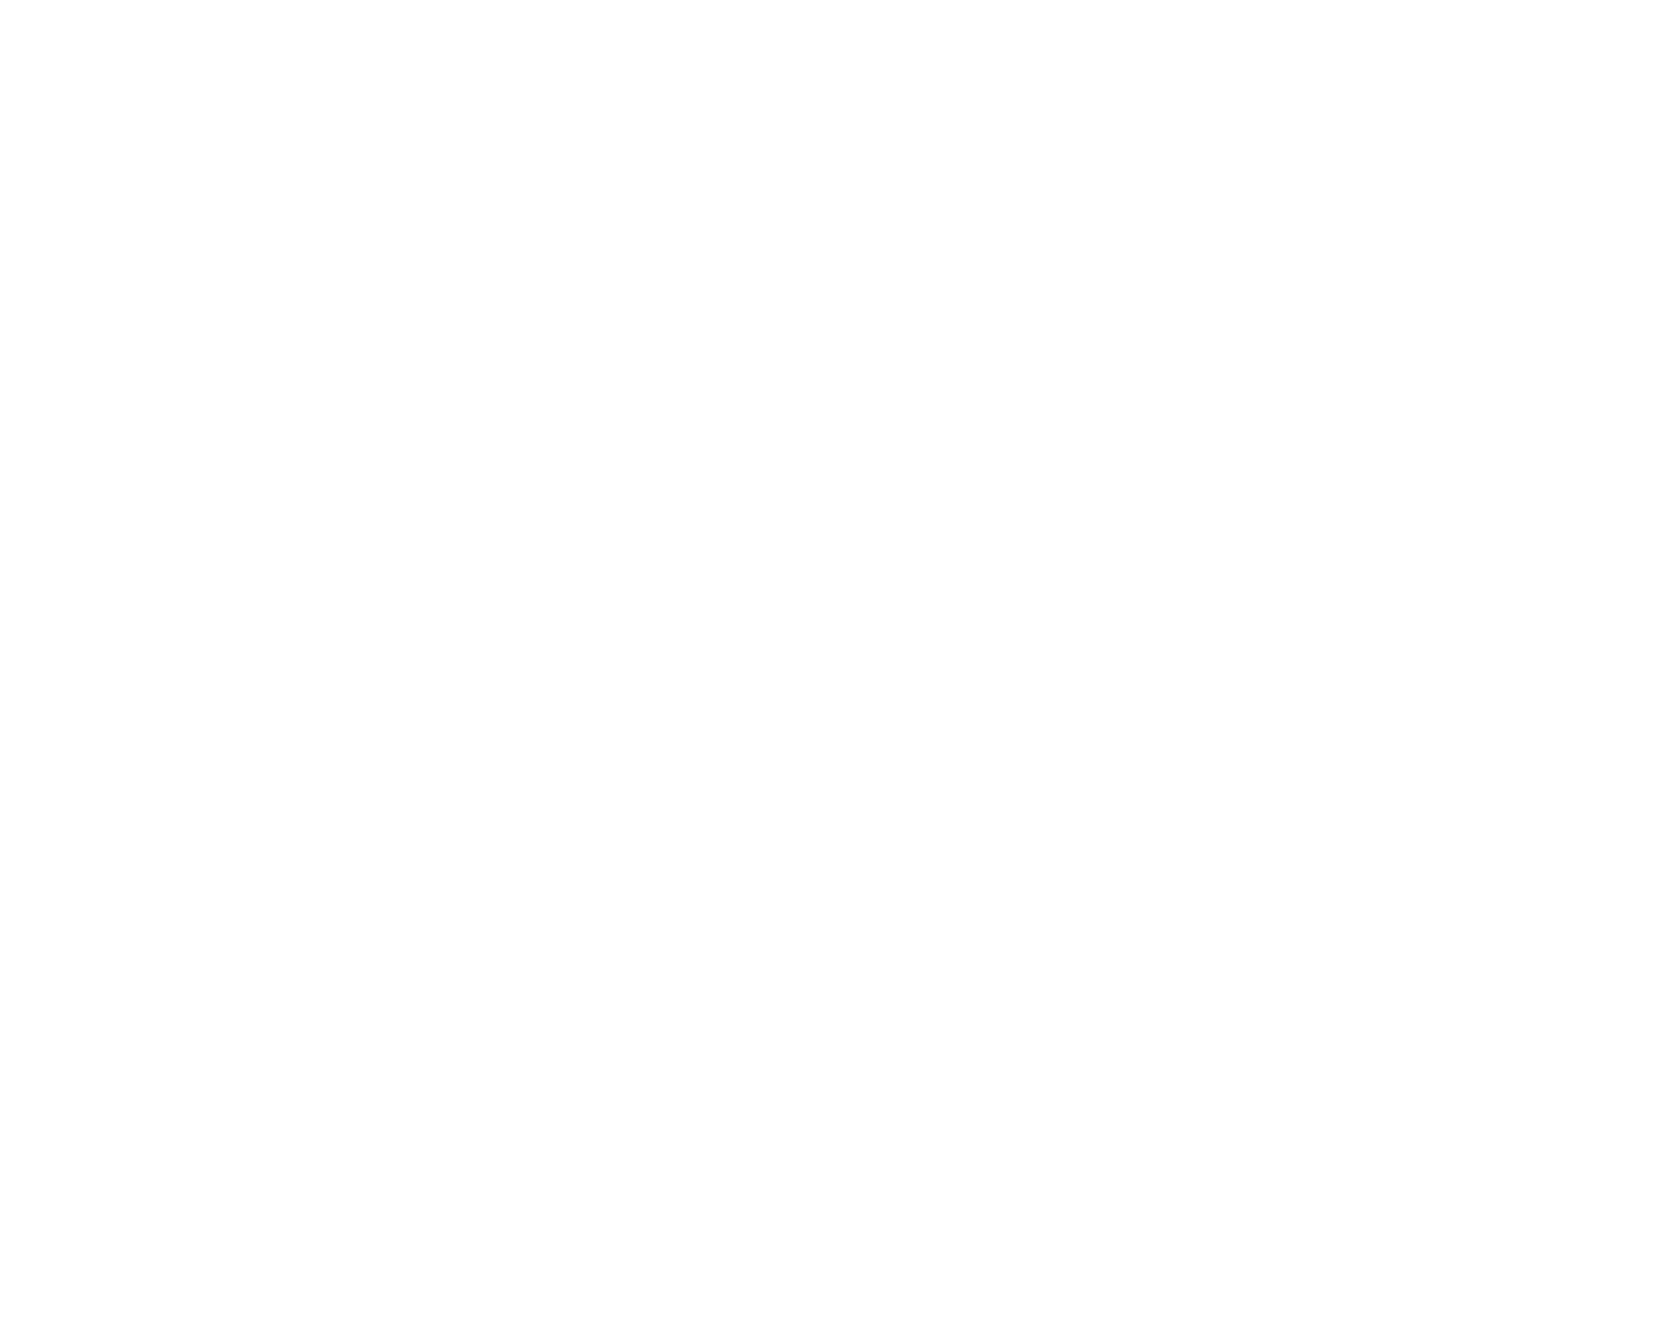 ca_los-angeles_public-relations-firms_2019_inverse2.png